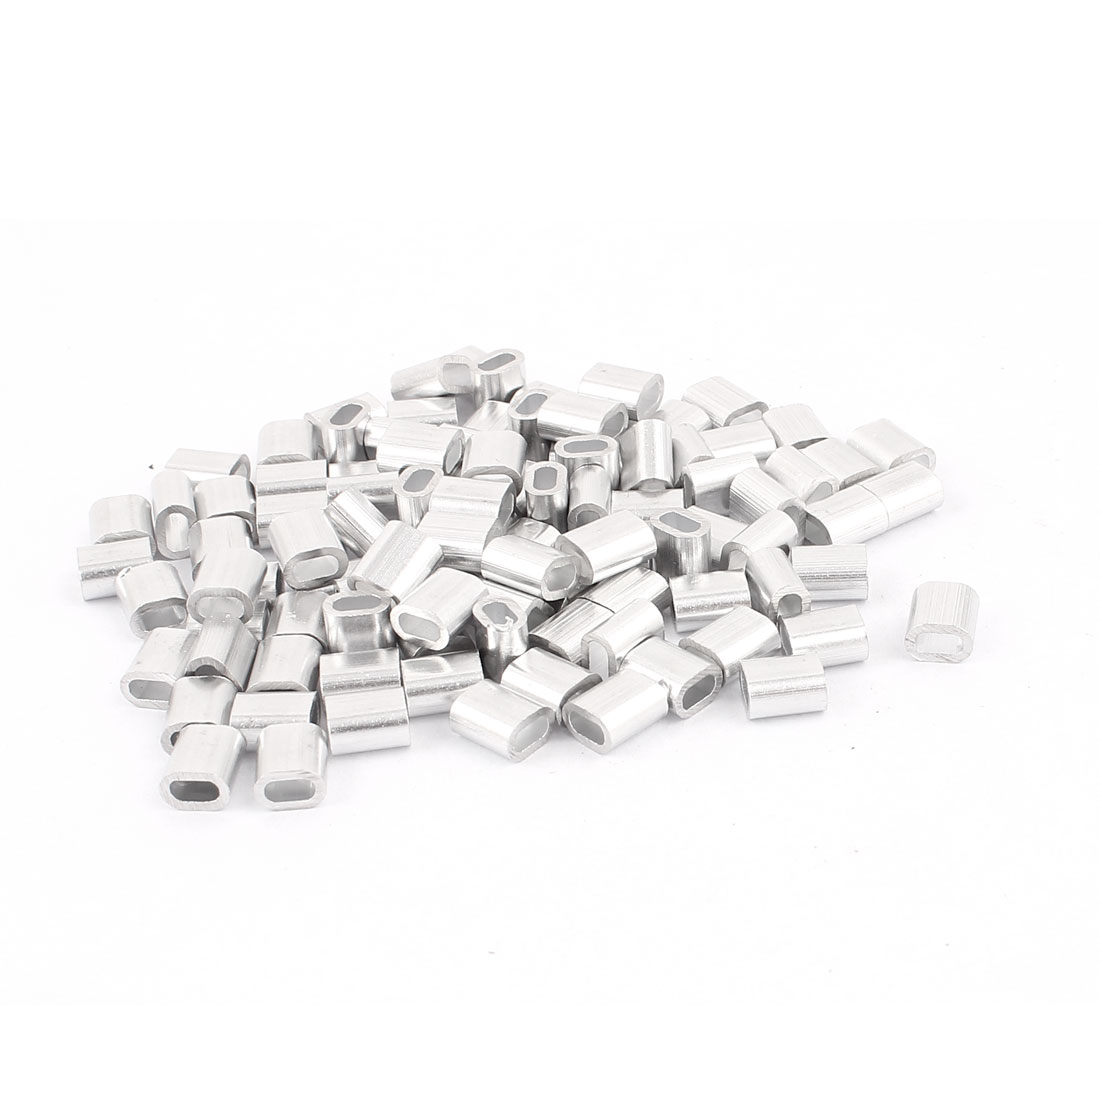 UXCELL 100 Pcs 2mm 5/64 Steel Wire Rope Aluminum Ferrules Sleeves Silver ToneUXCELL 100 Pcs 2mm 5/64 Steel Wire Rope Aluminum Ferrules Sleeves Silver Tone